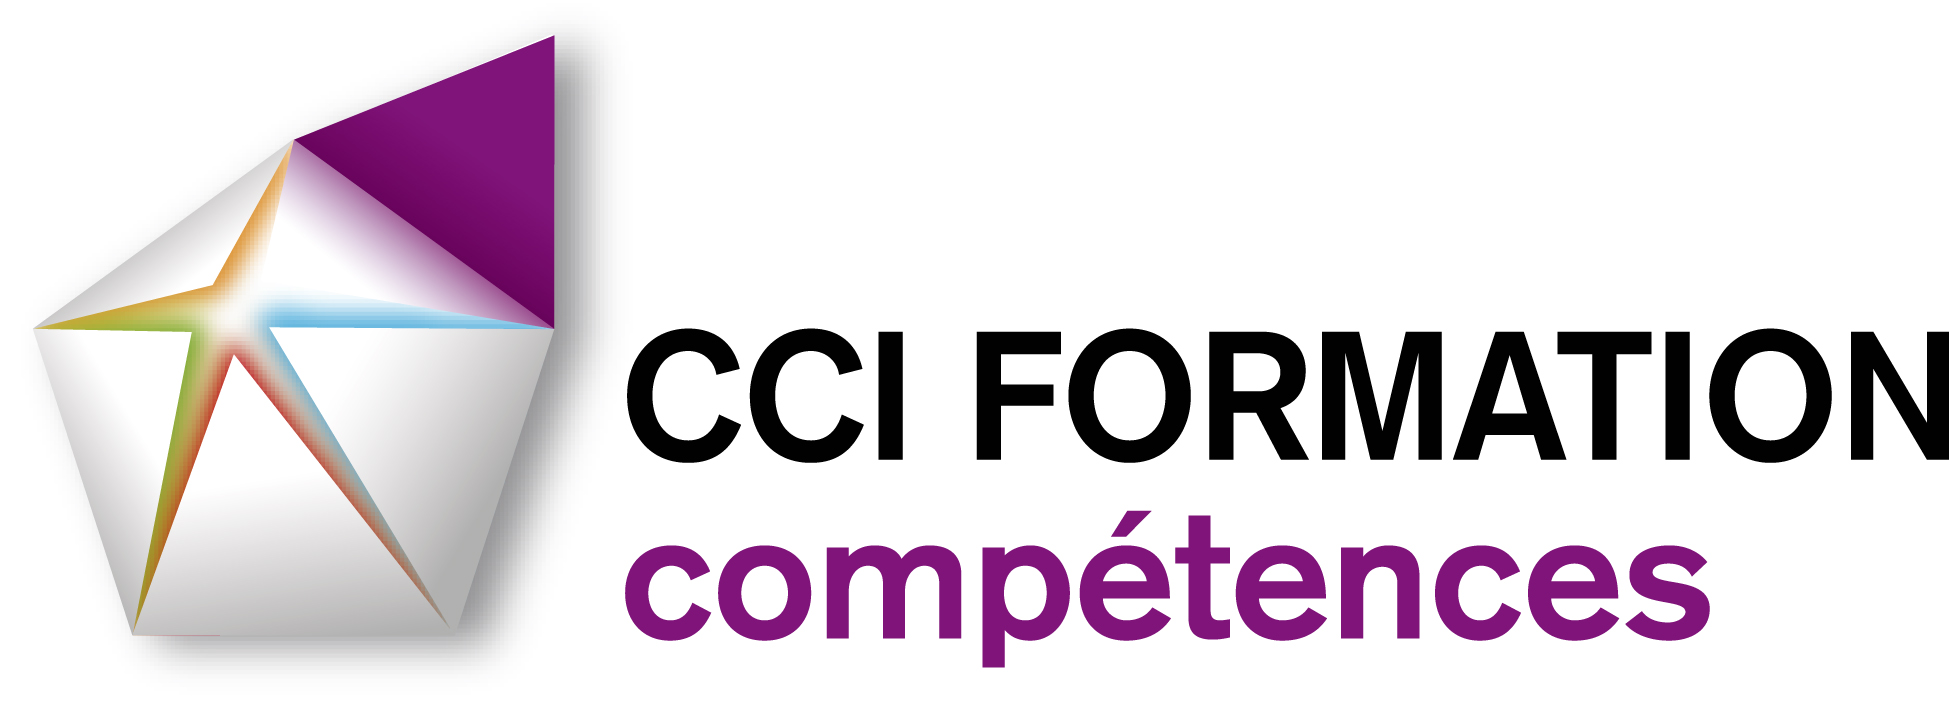 CCI_FORMATION_COMPETENCES